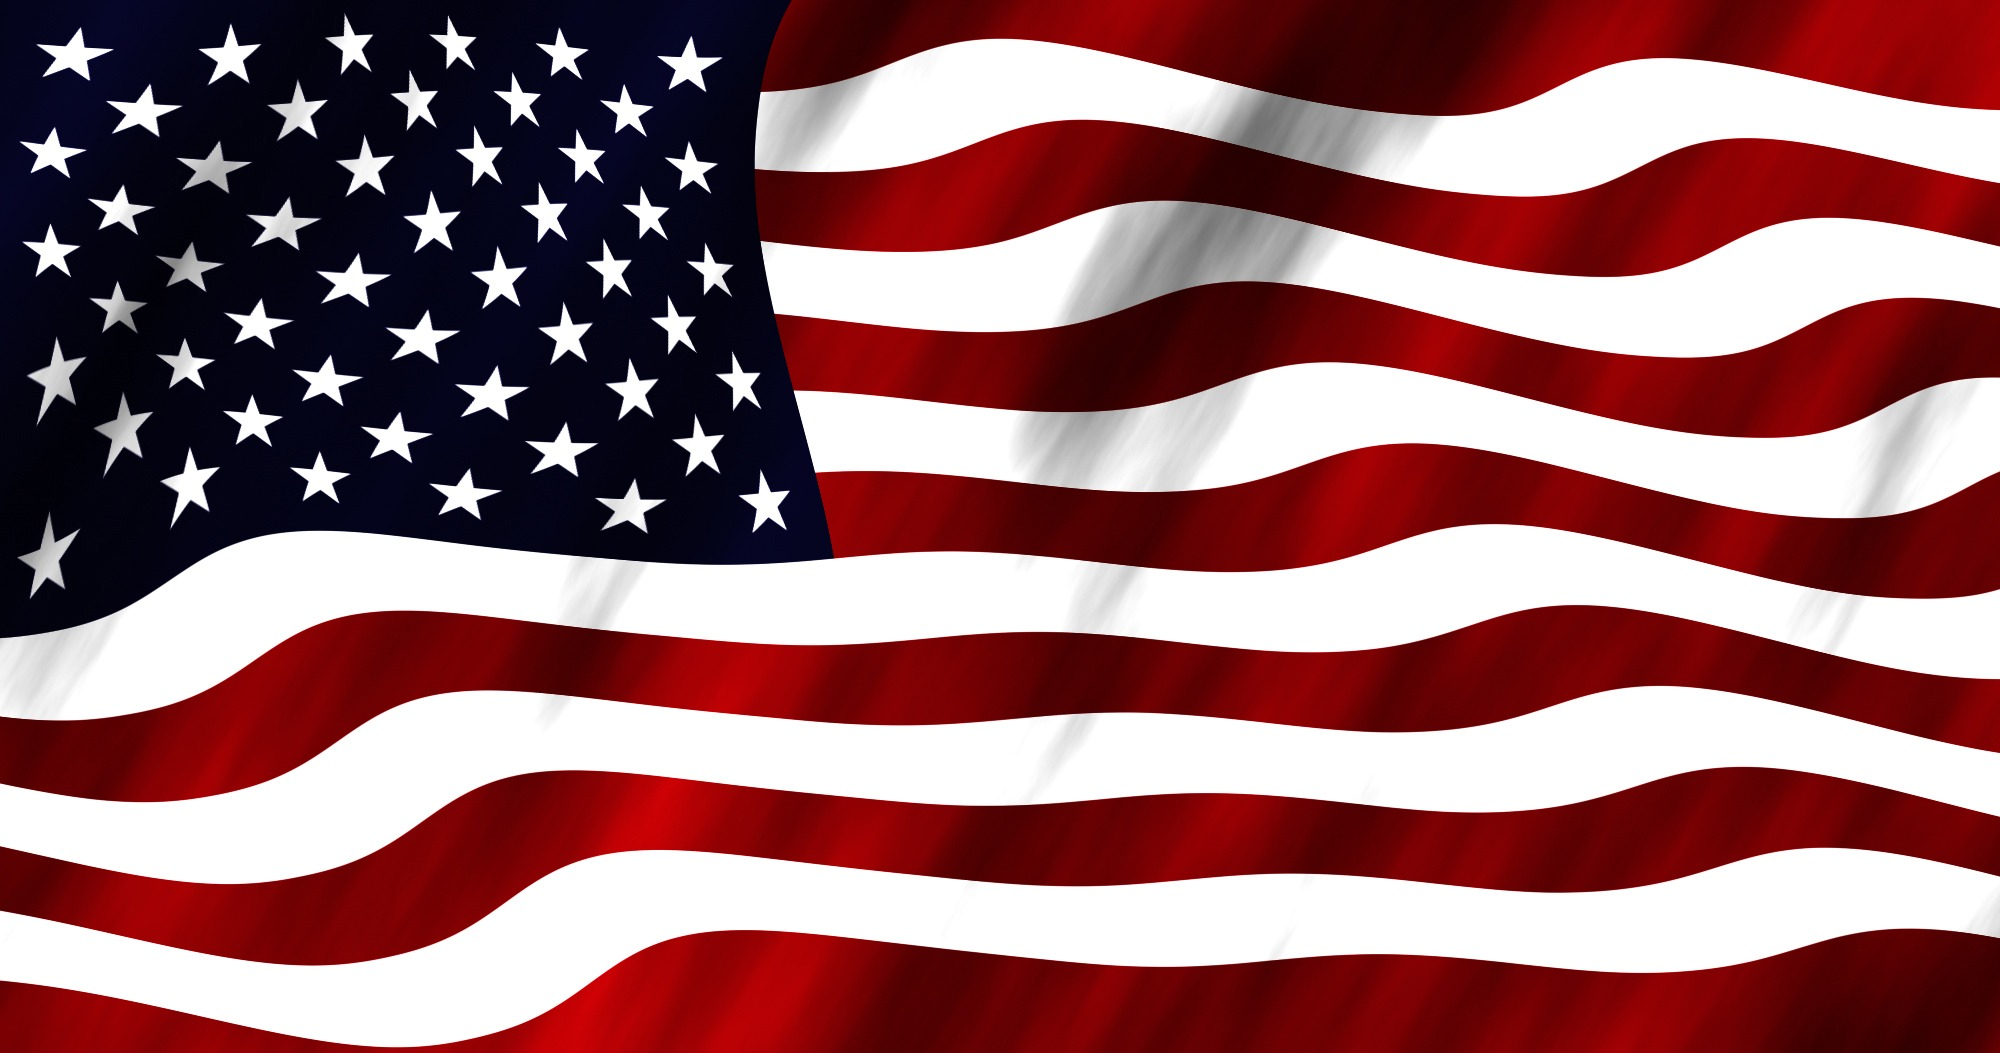 Patriotic Backgrounds Related Keywords Suggestions   Patriotic 2000x1053